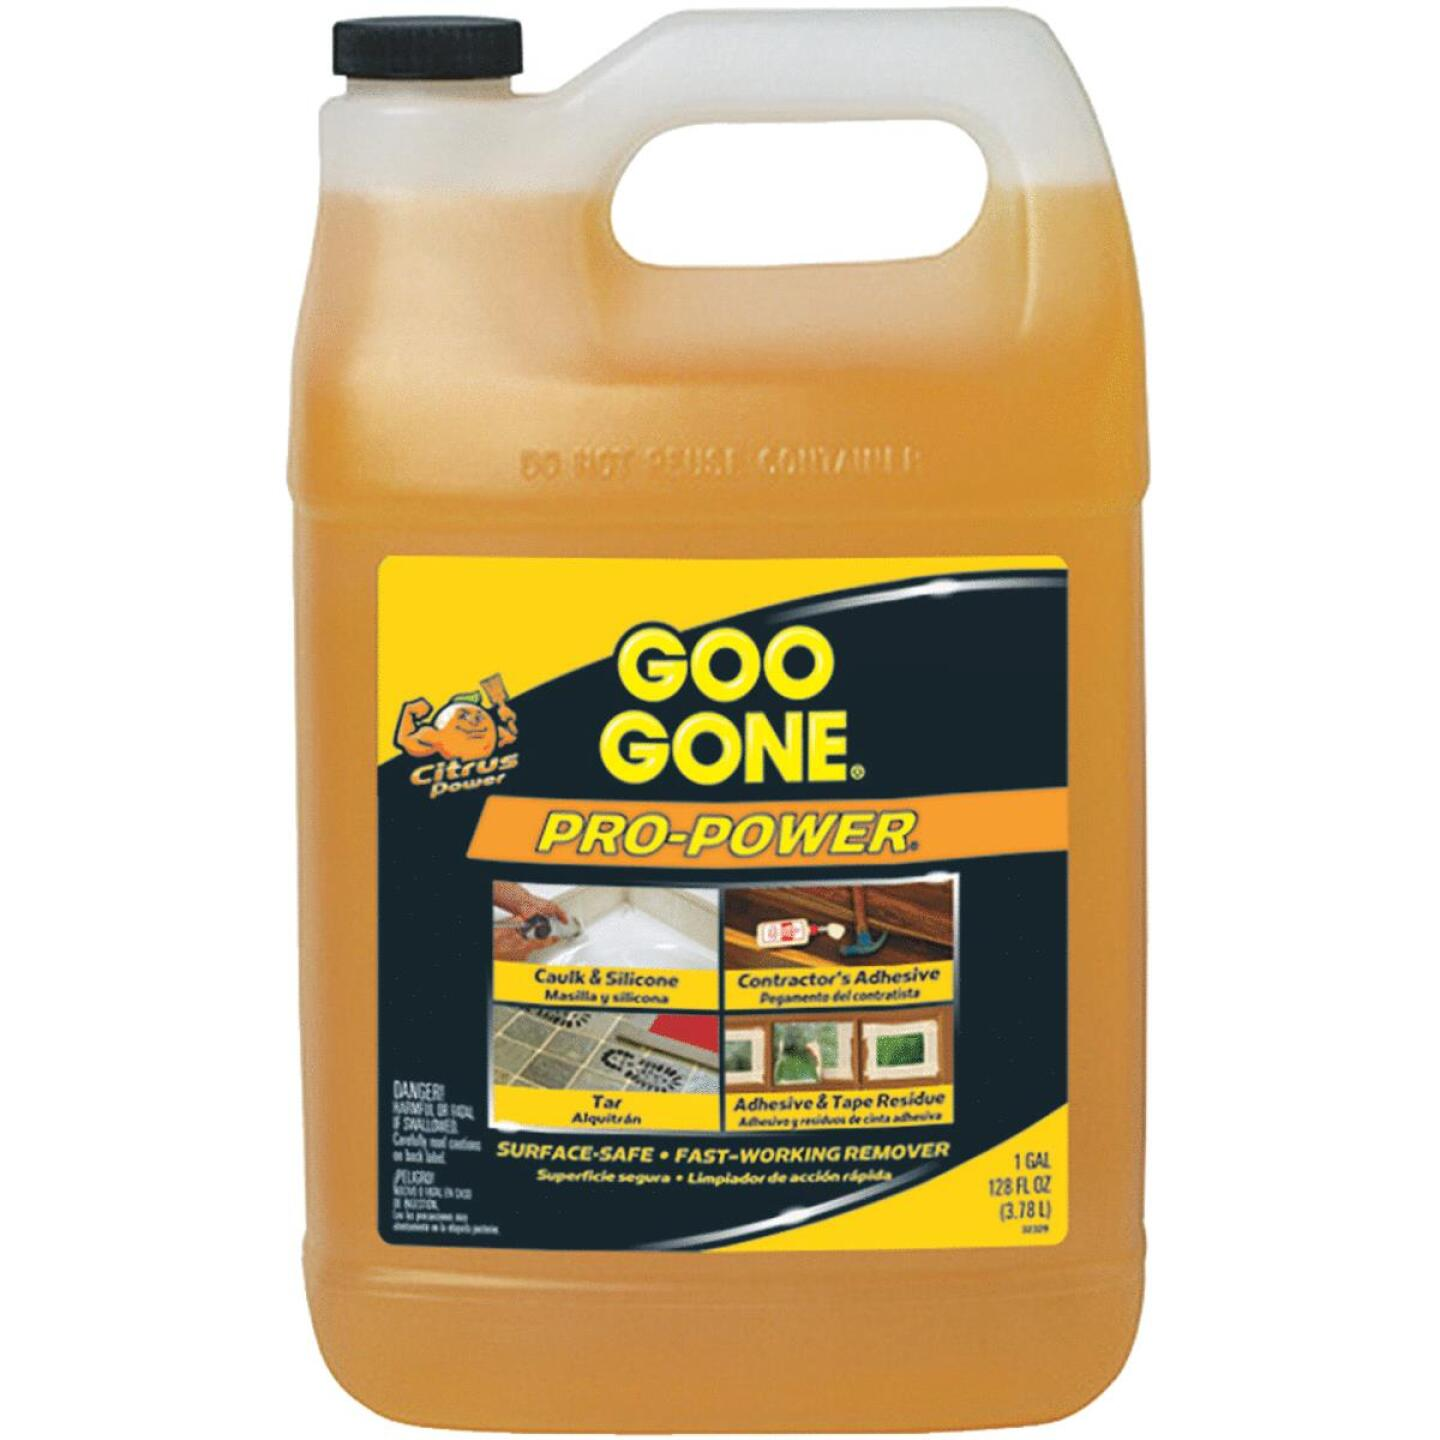 Goo Gone 1 Gal. Pro-Power Adhesive Remover Image 294